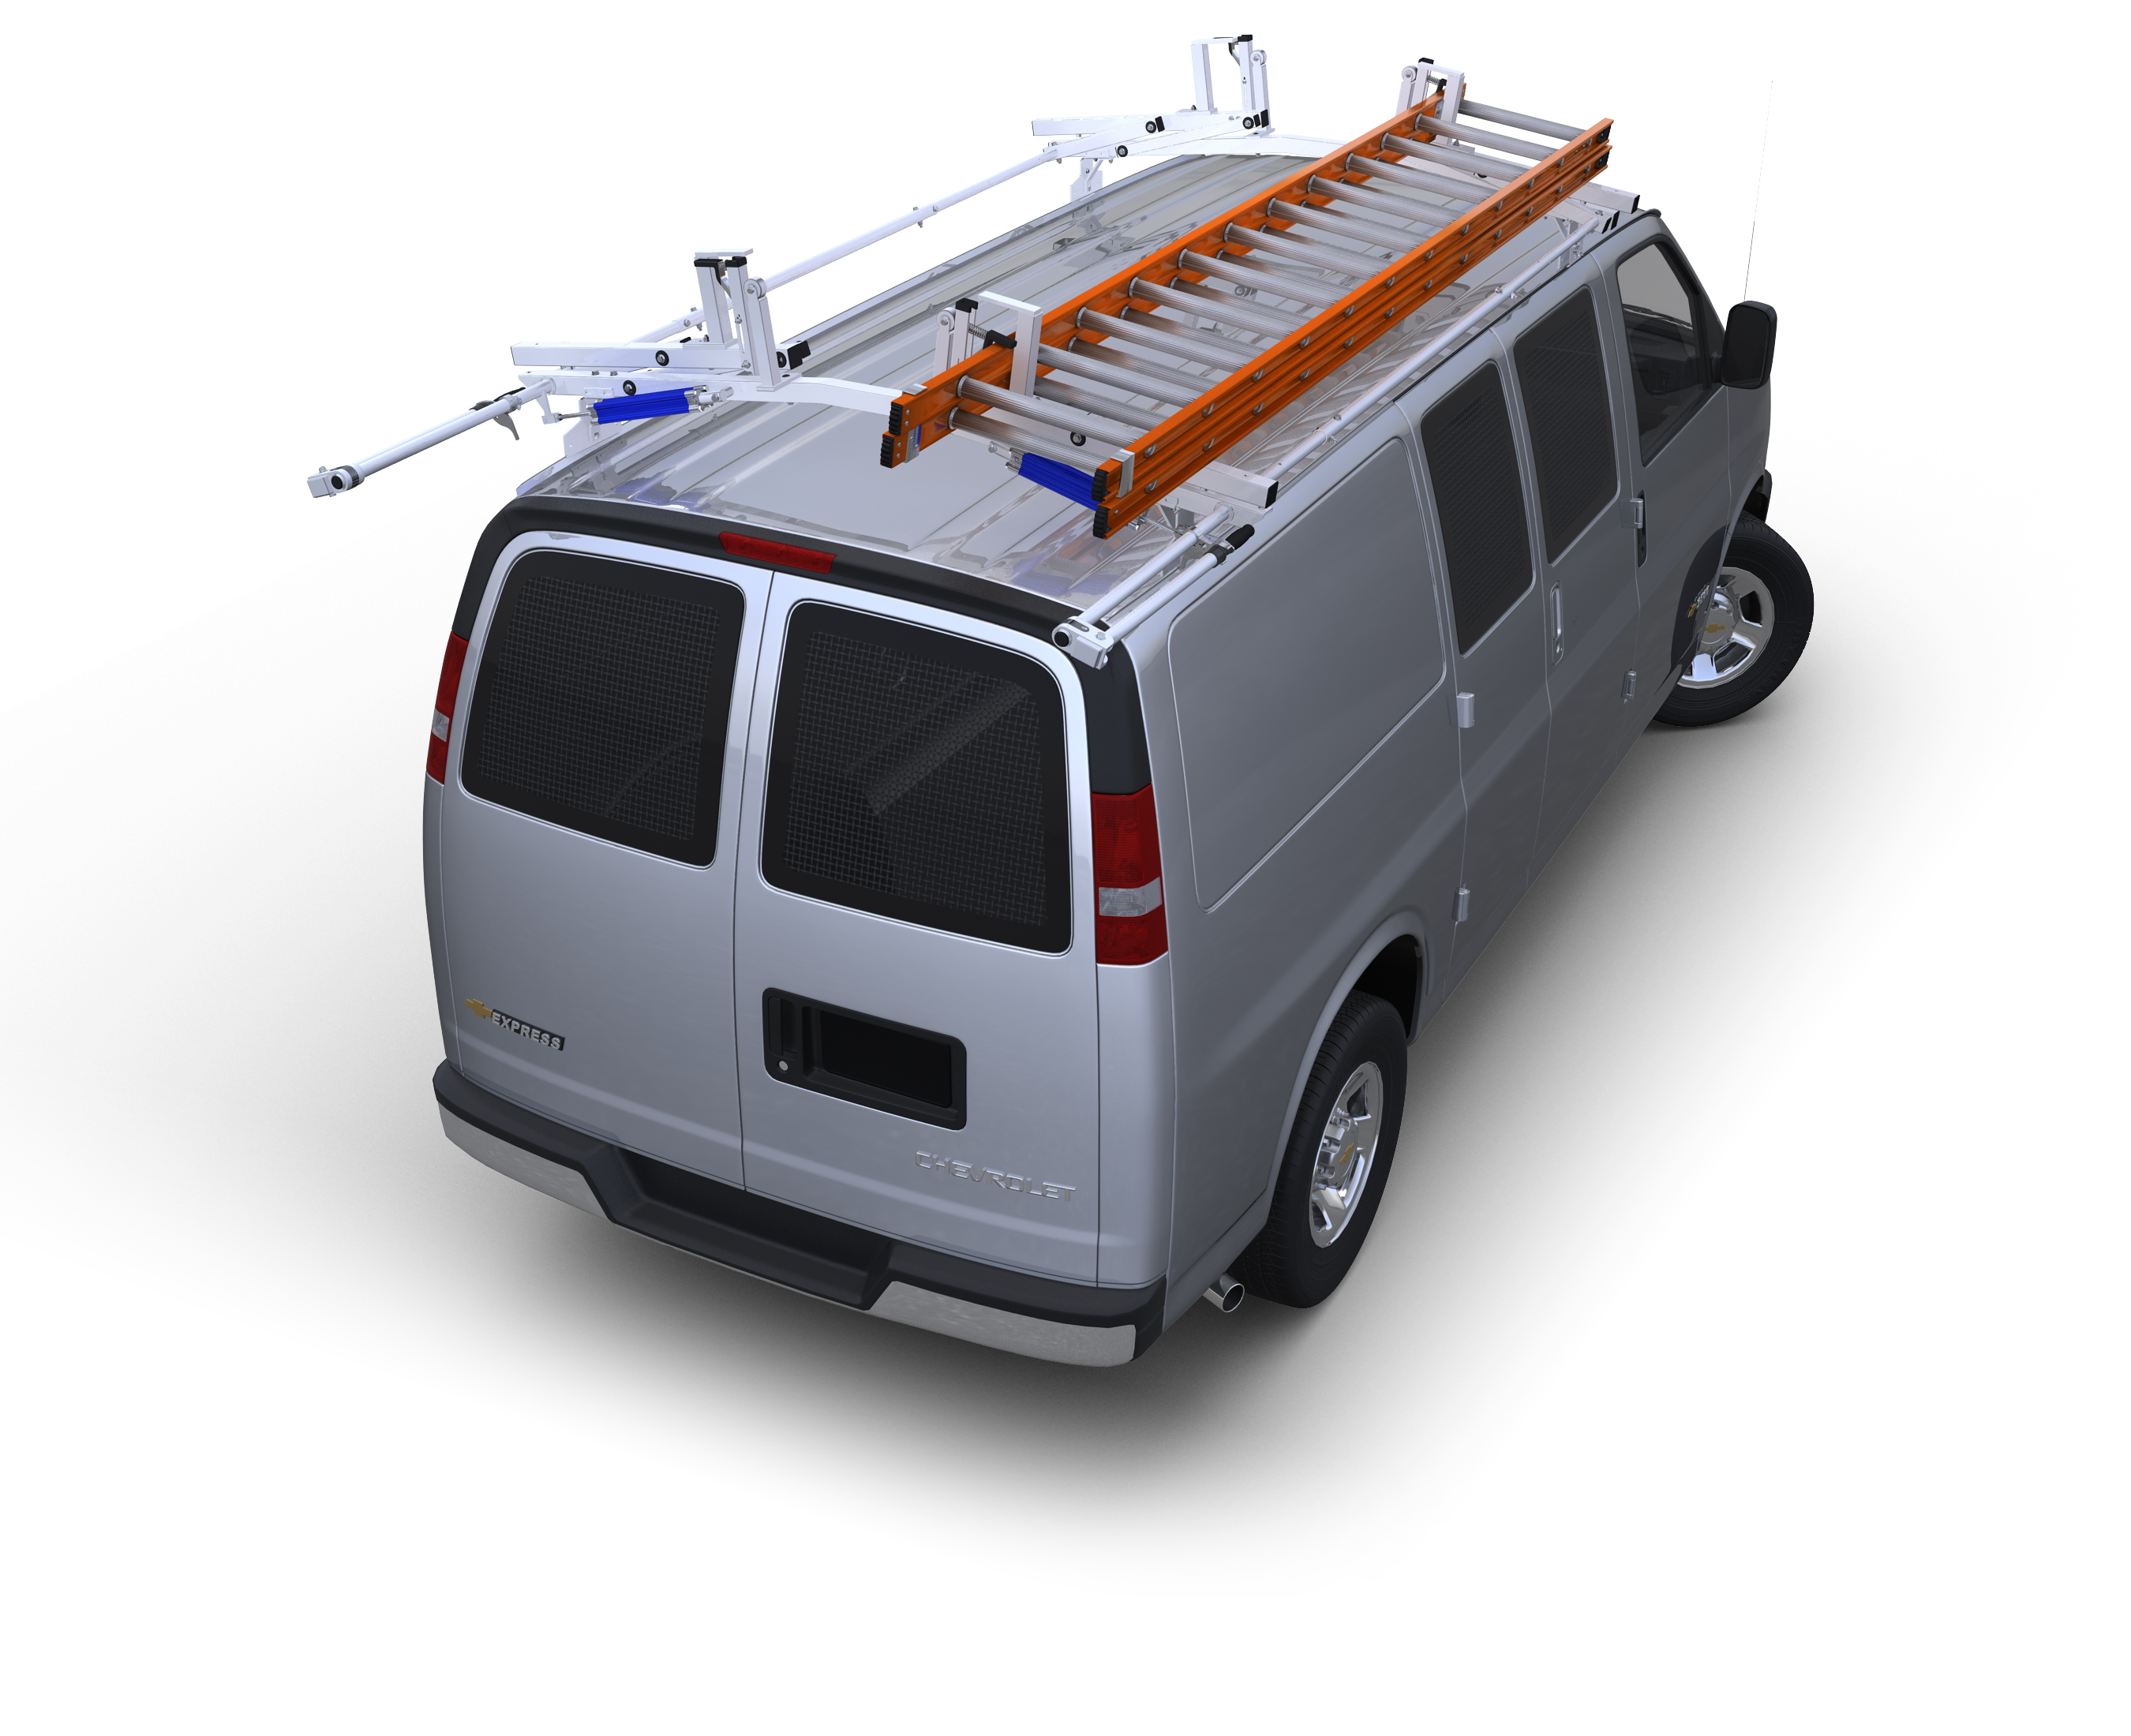 Sprinter Aluminum Ladder Rack for 2006 and older Sprinters